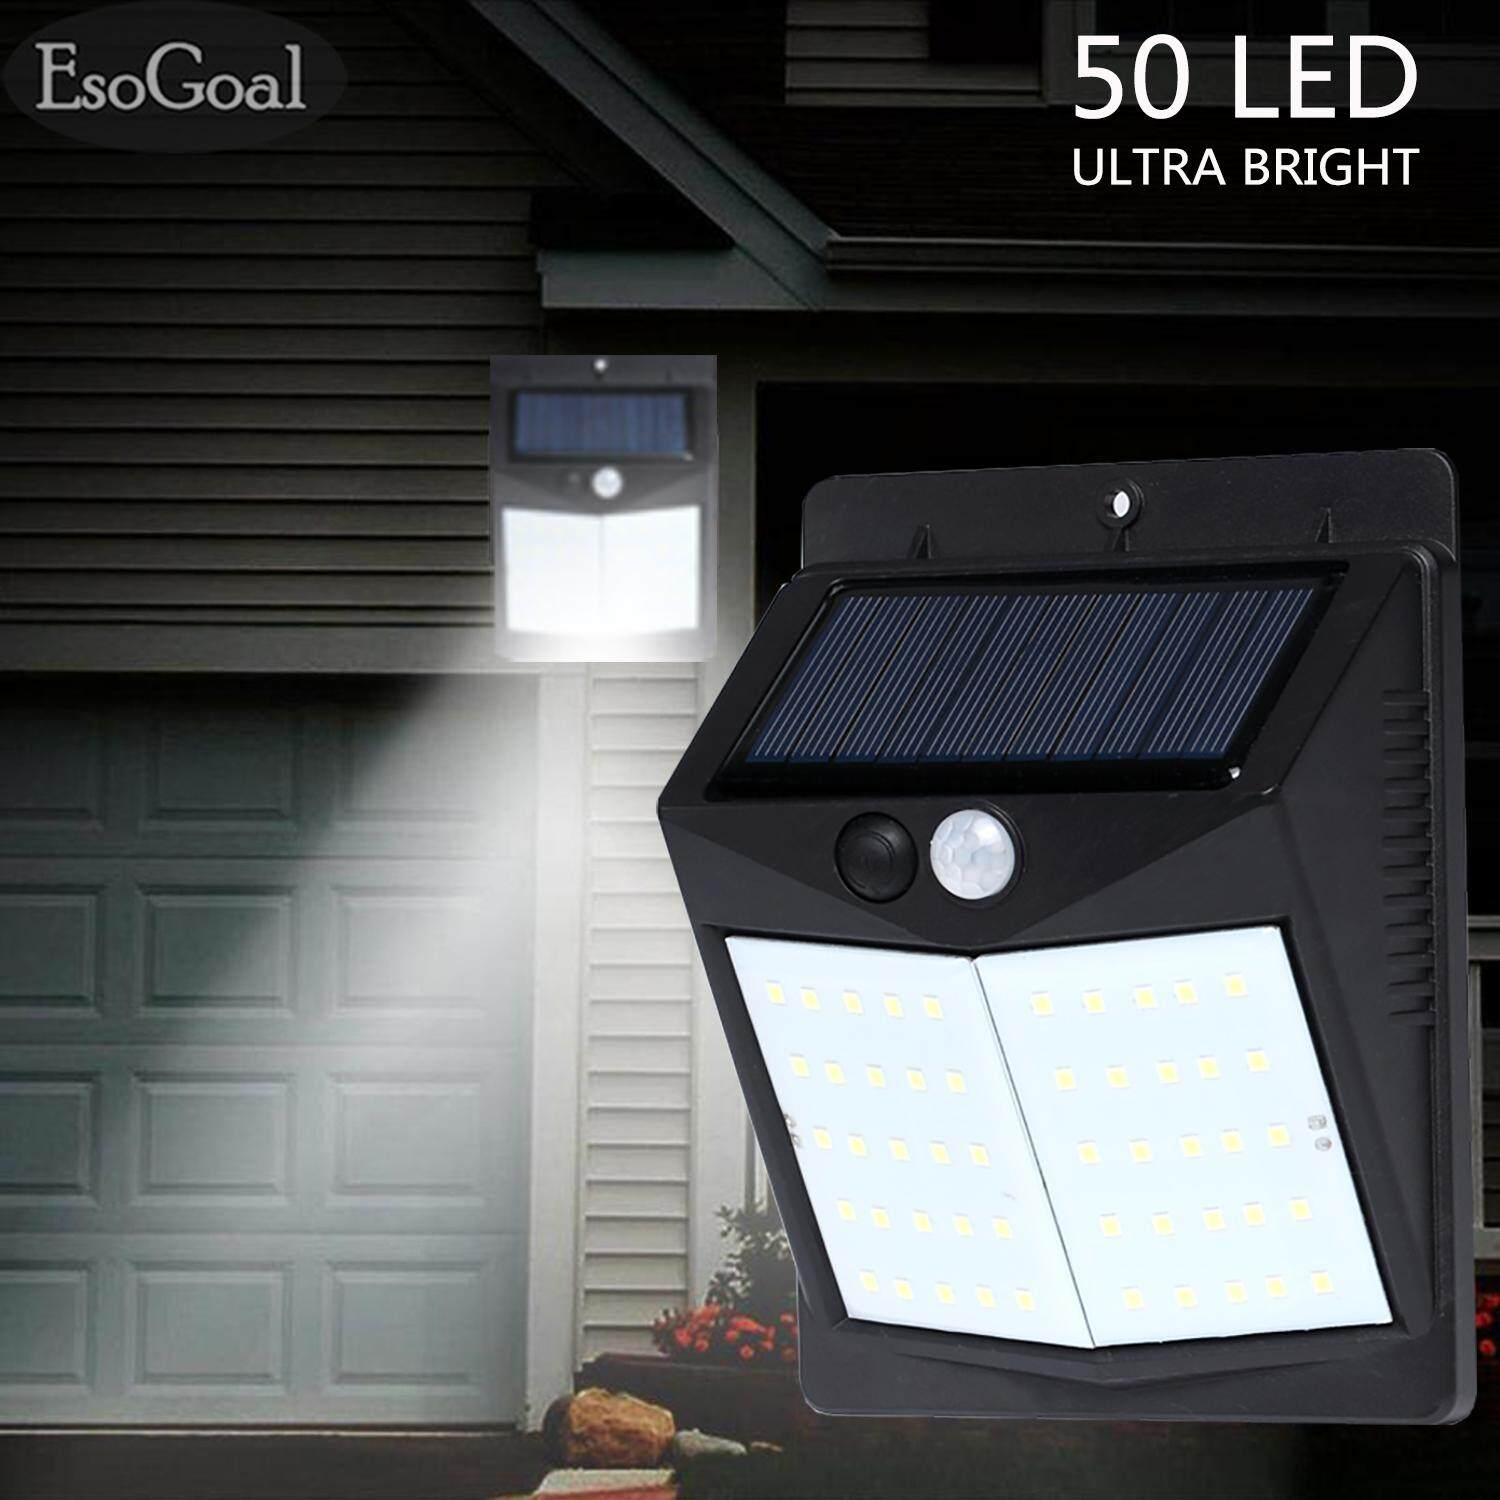 Outdoor Lighting For Sale Lights Prices Brands Review Light Unit And Method On Wiring A Switch To An Outside Esogoal Led Solar Wall Waterproof Motion Sensor Wireless Powered Lamp